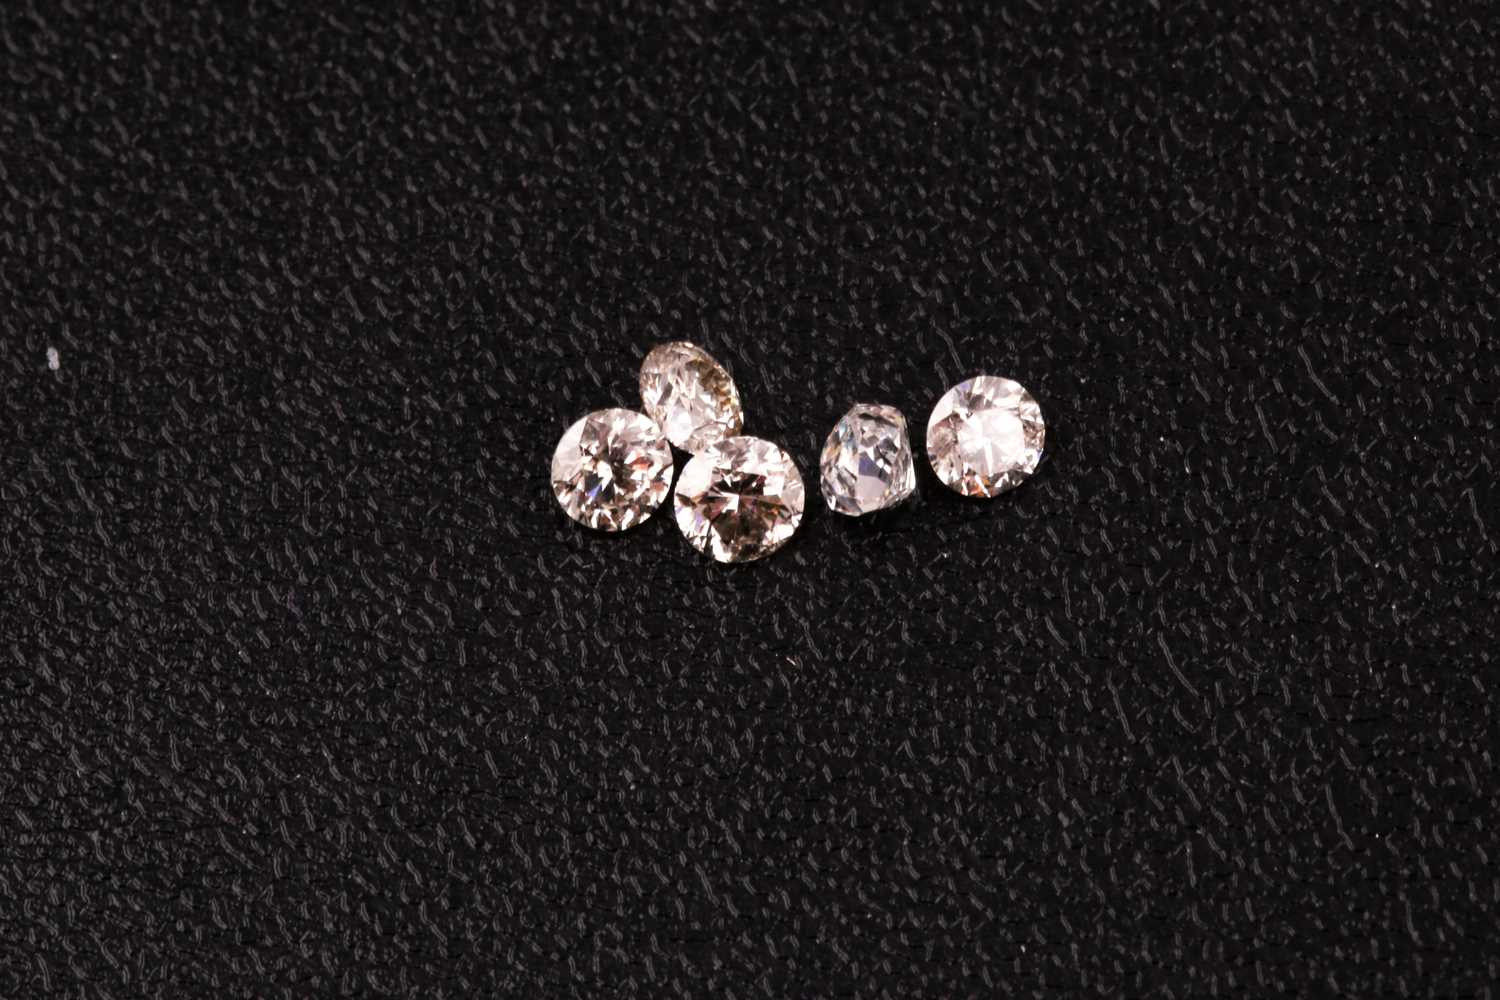 A group of five round brilliant-cut diamonds, showing slight colour, approximately 1.12 carats - Image 2 of 3